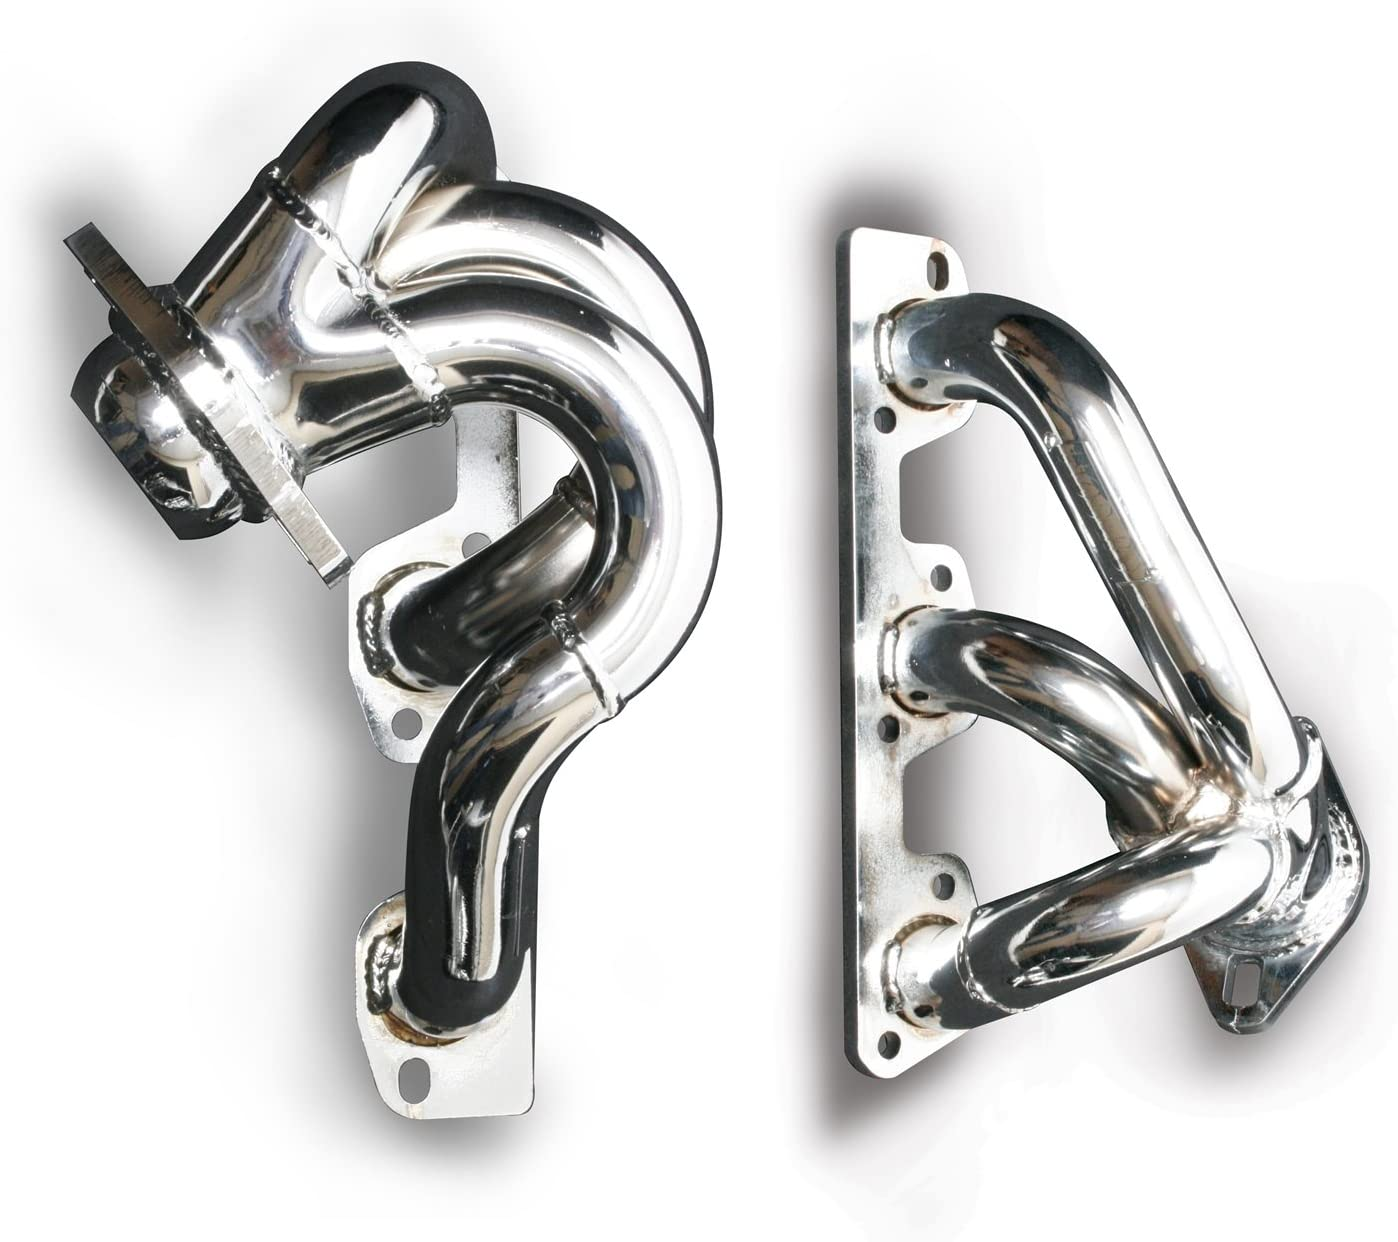 Gibson GP115S Stainless Steel Performance Header Gibson Performance Exhaust